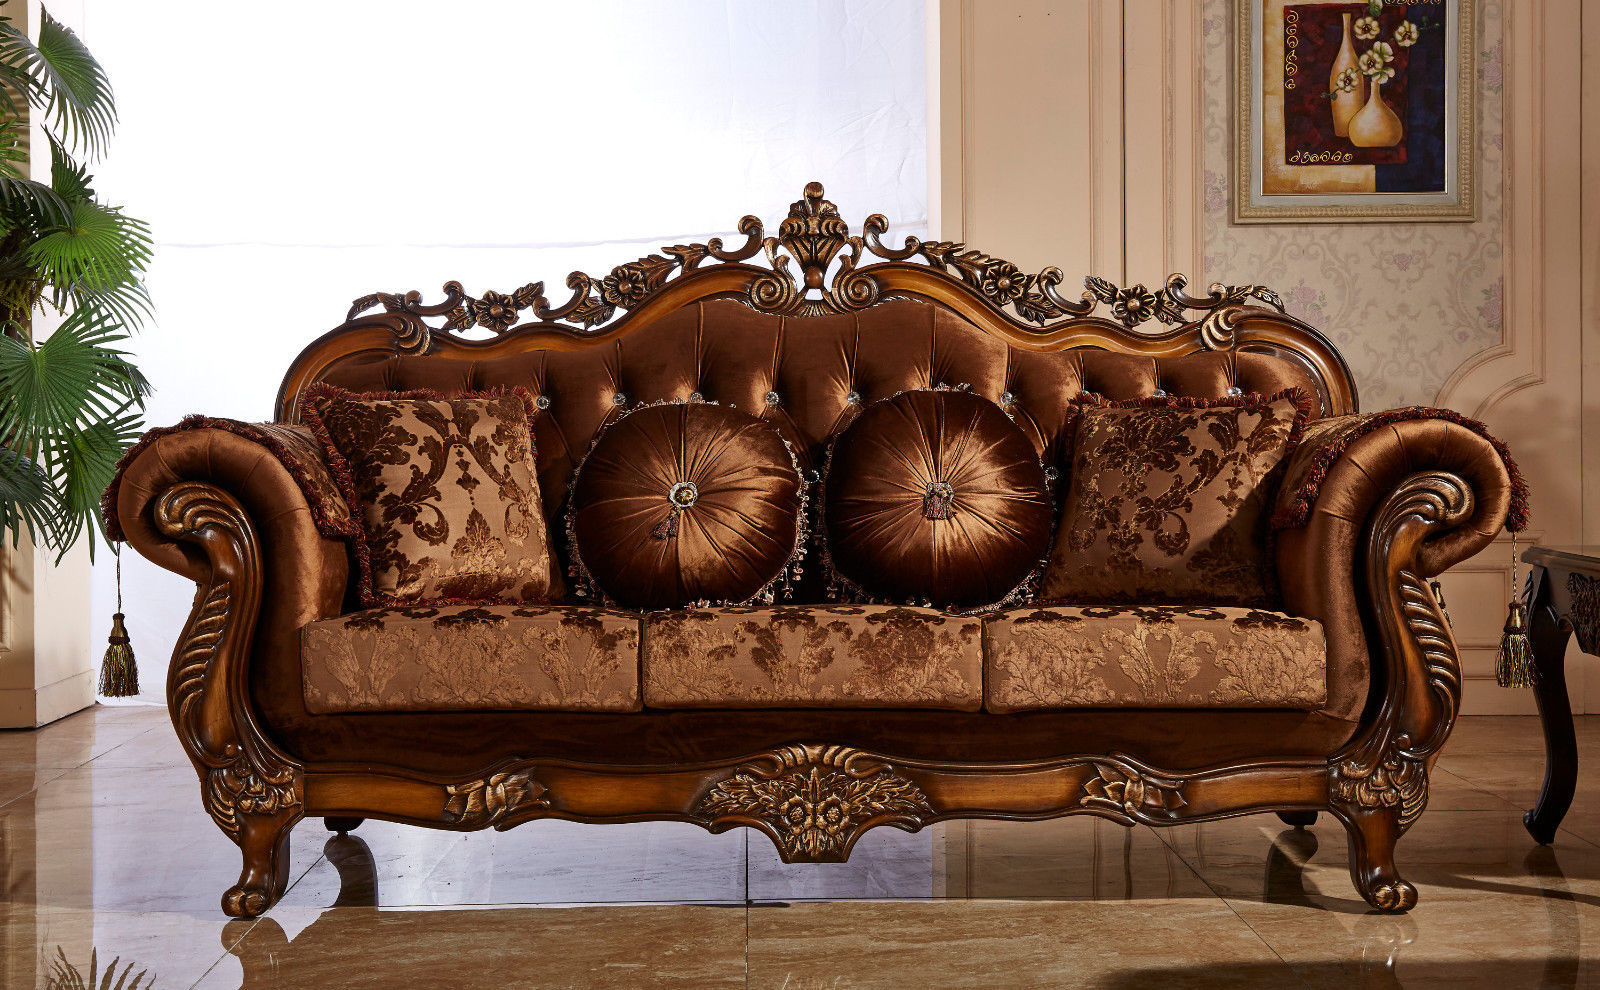 Meridian 692 Living Room Sofa Cherry Chic Traditional Style